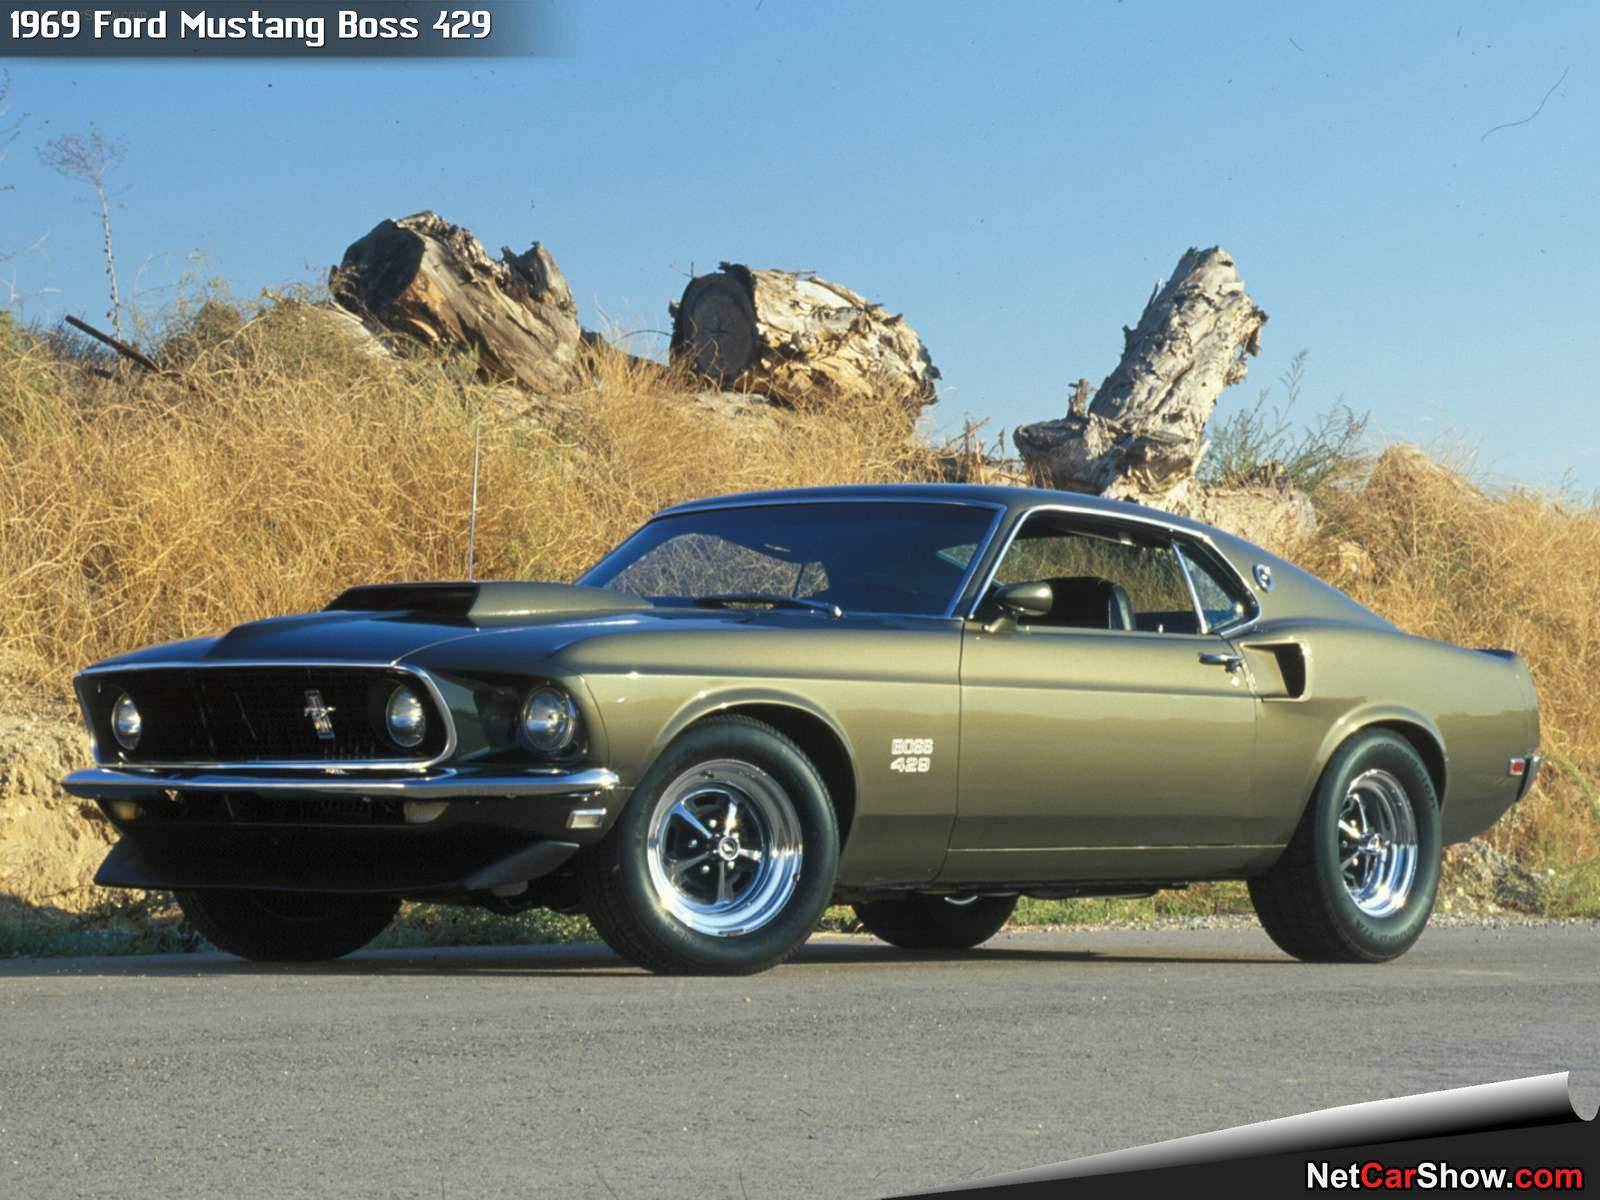 FORD MUSTANG 1969 - 2015 Car News, Auto Photos, Prices ...